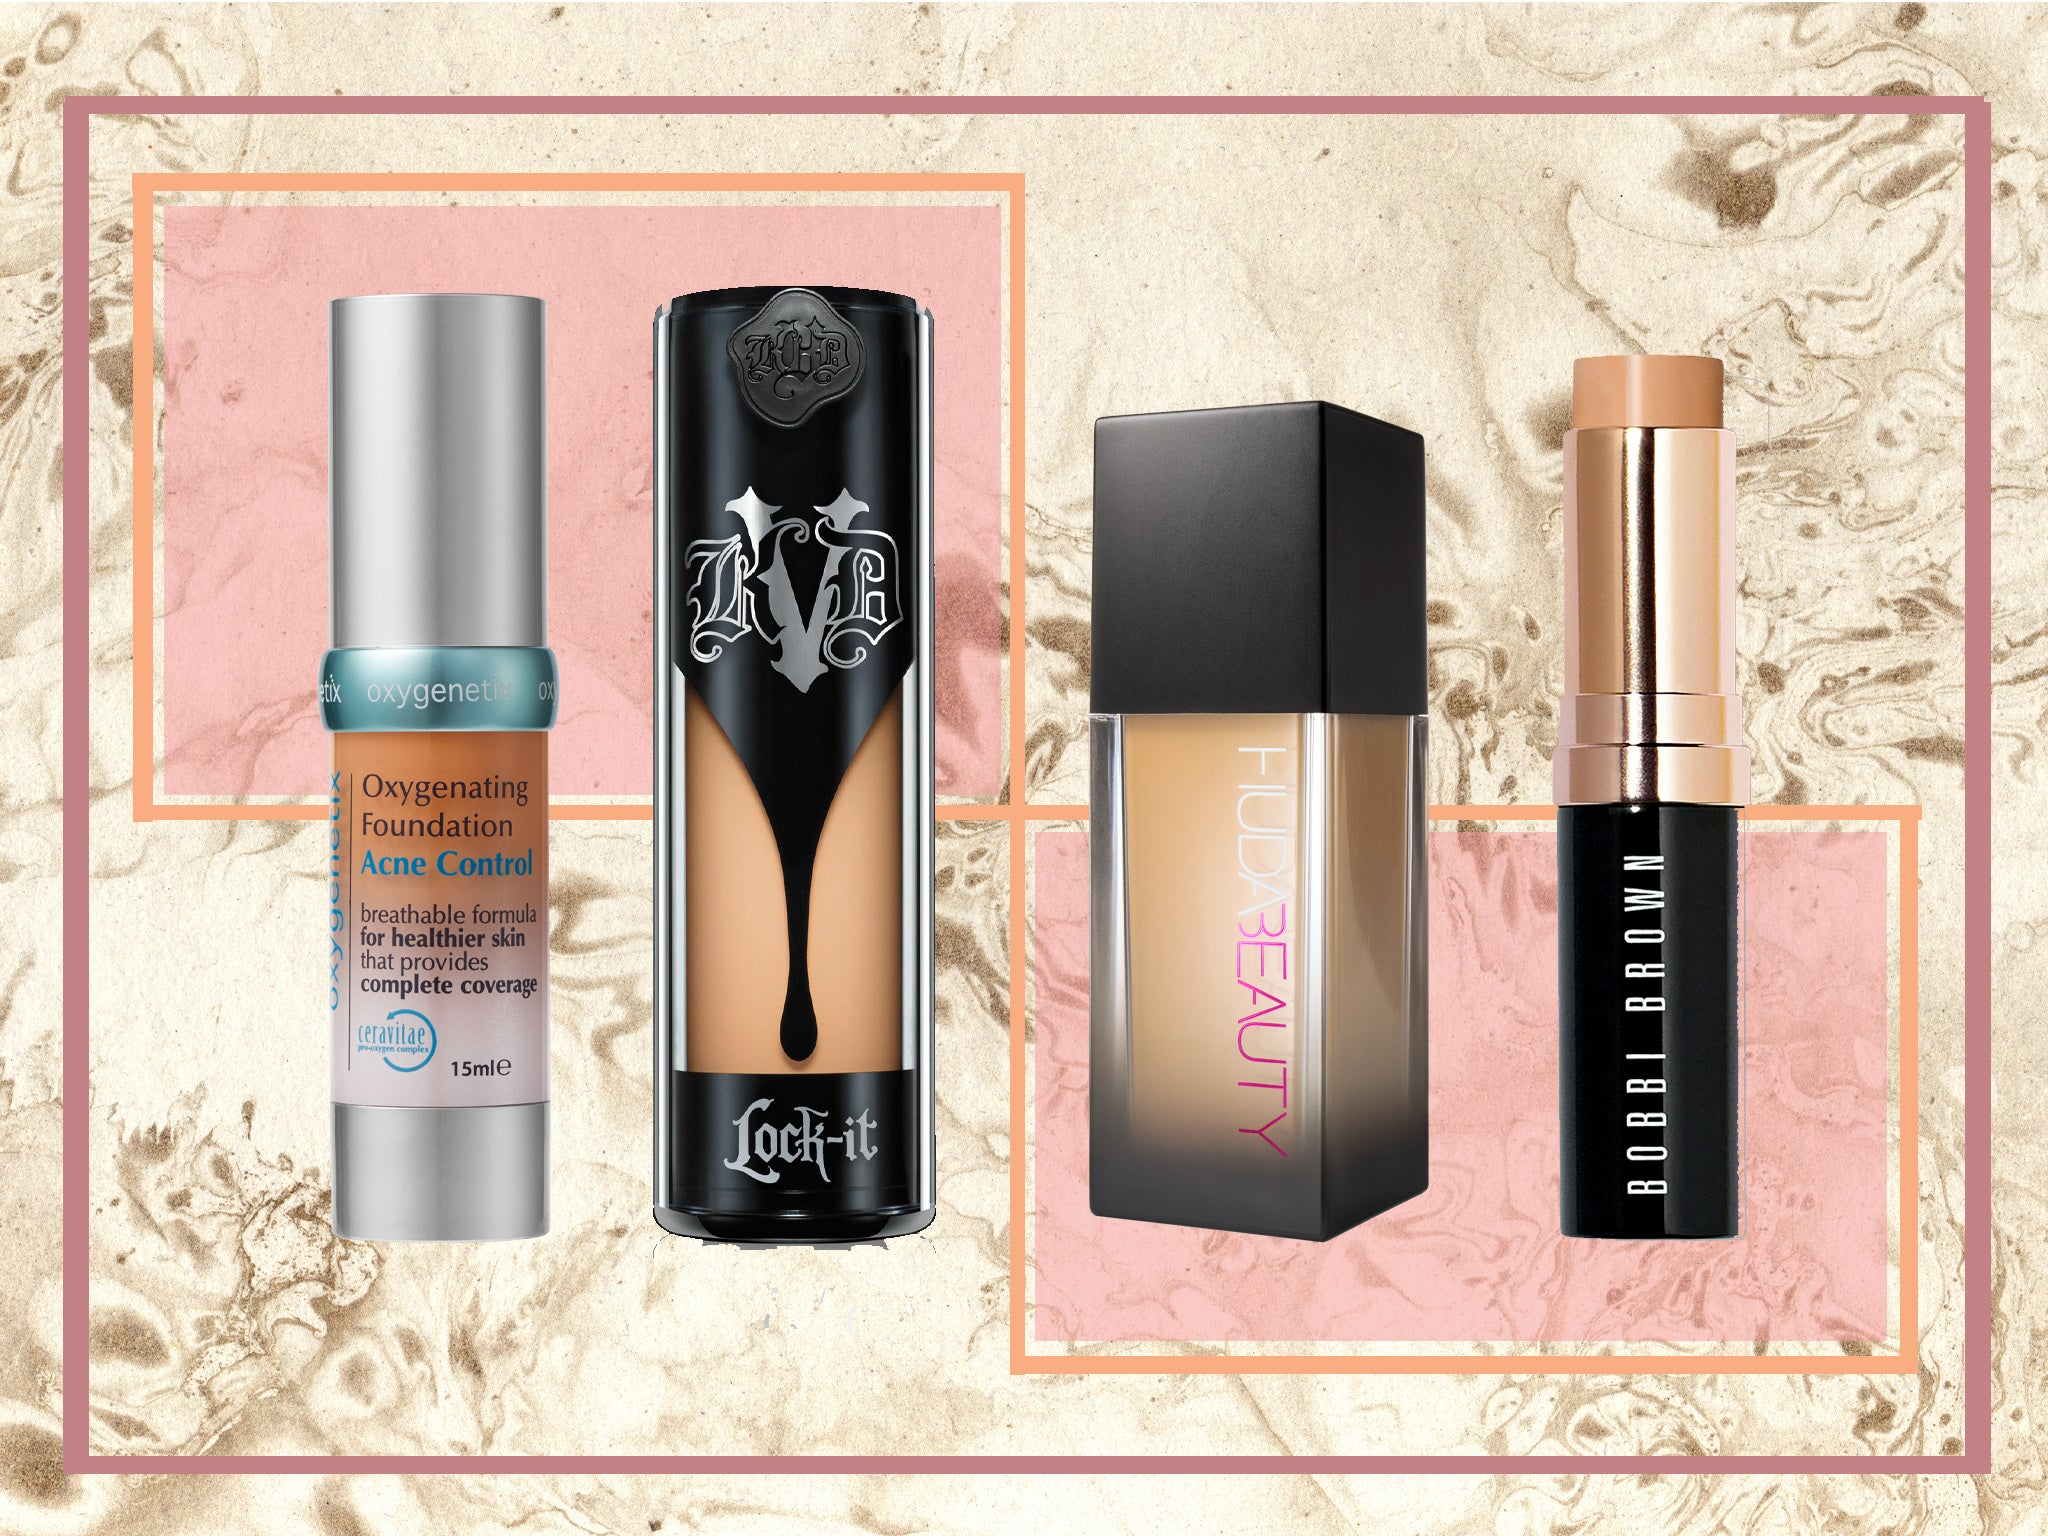 Best Foundations For Asian Skin Tone 2020 Choose From Lightweight Vegan And Matte Coverage The Independent